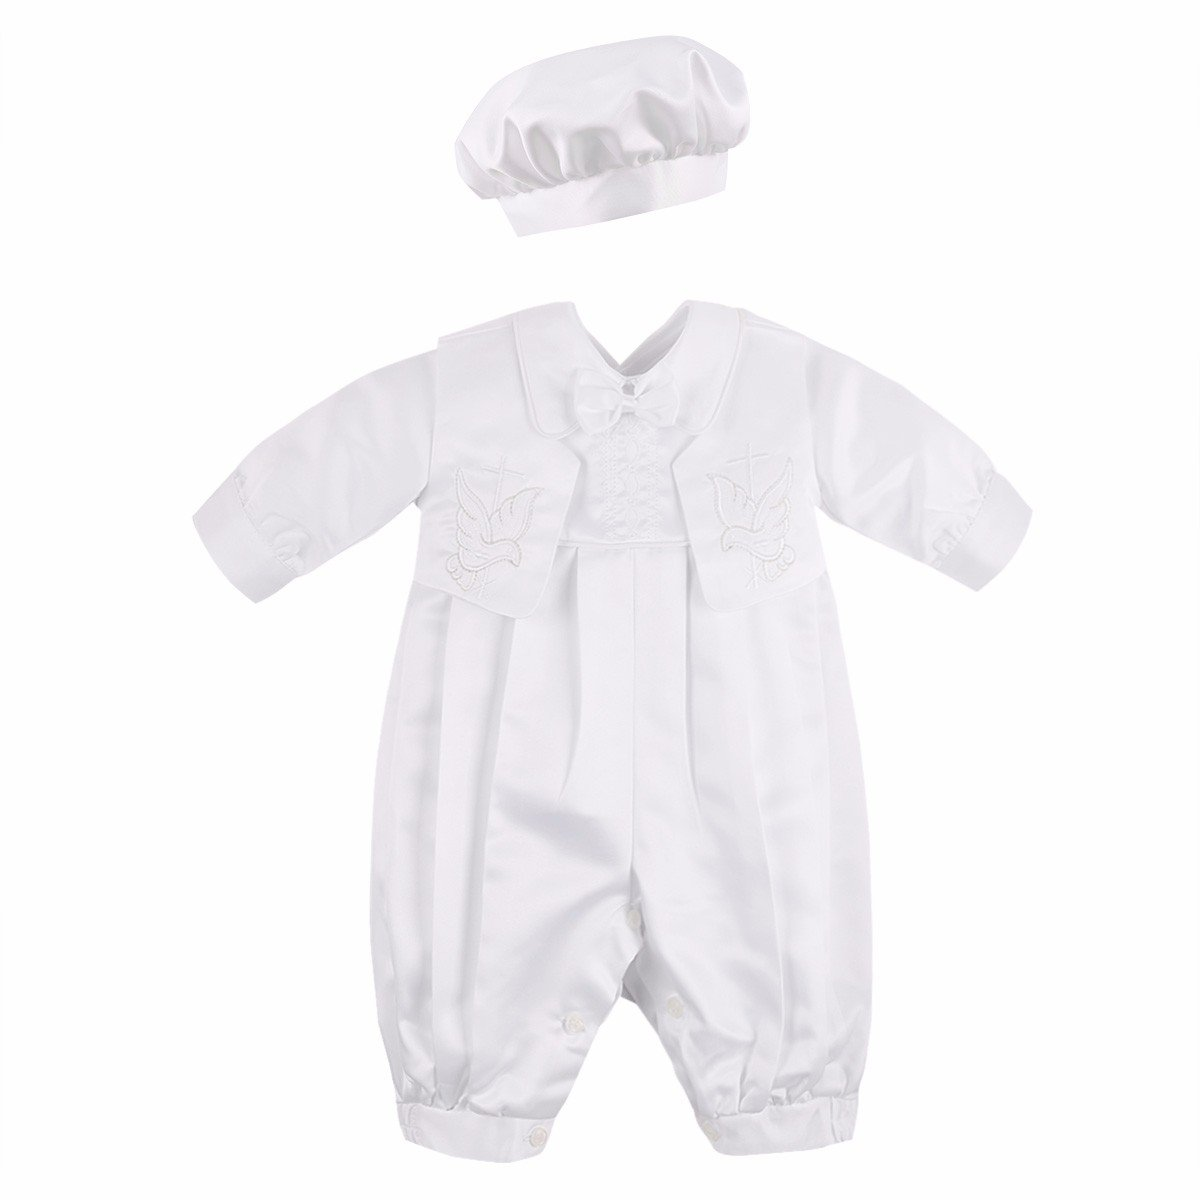 iEFiEL Baby Boy 3Pcs Baptism Christening Outfits Long Sleeve Romper with Vest and Bonnet Clothing Set